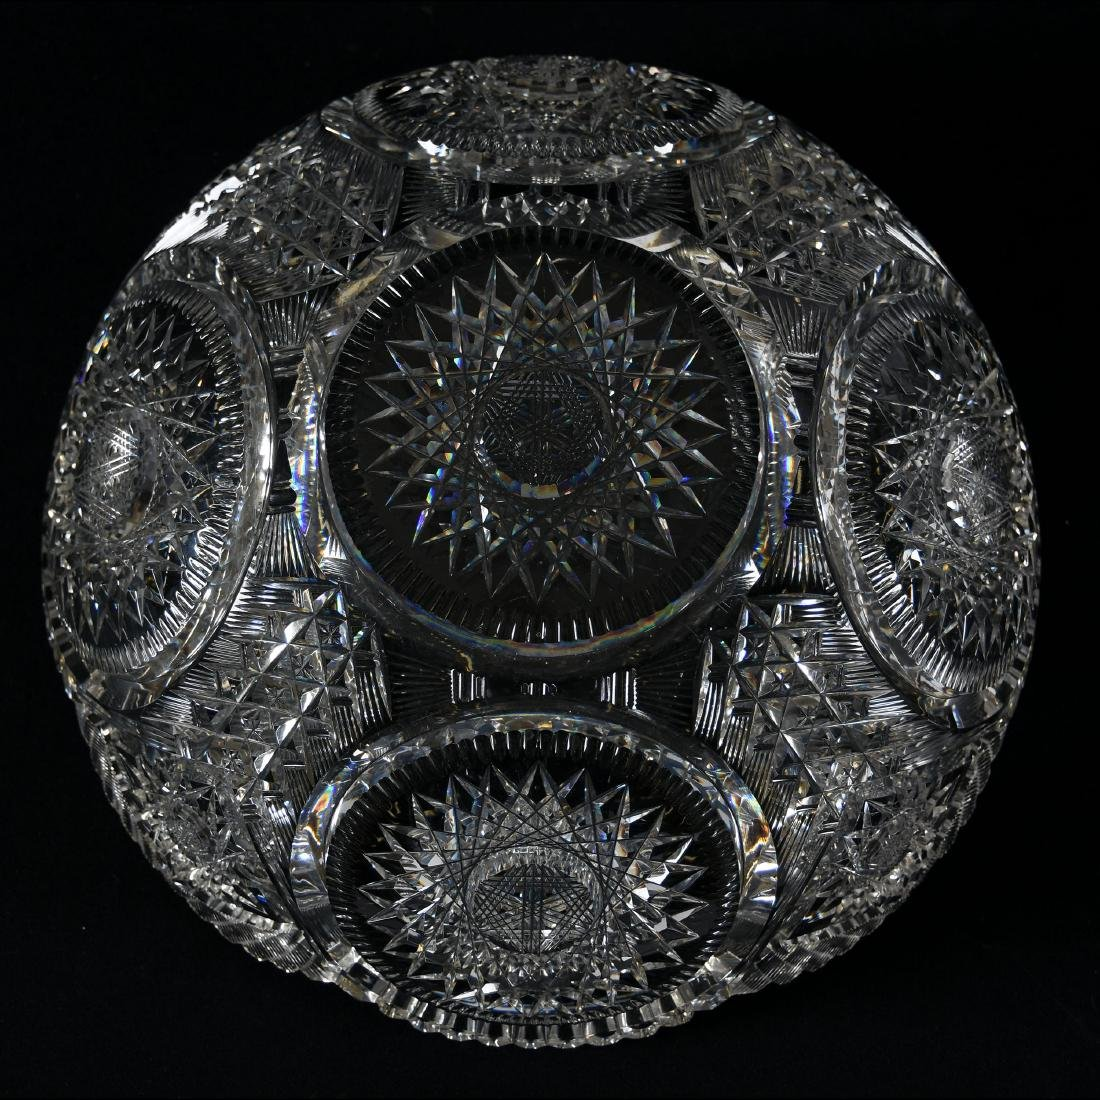 Bowl, Pairpoint, Sparkle Pattern - 2